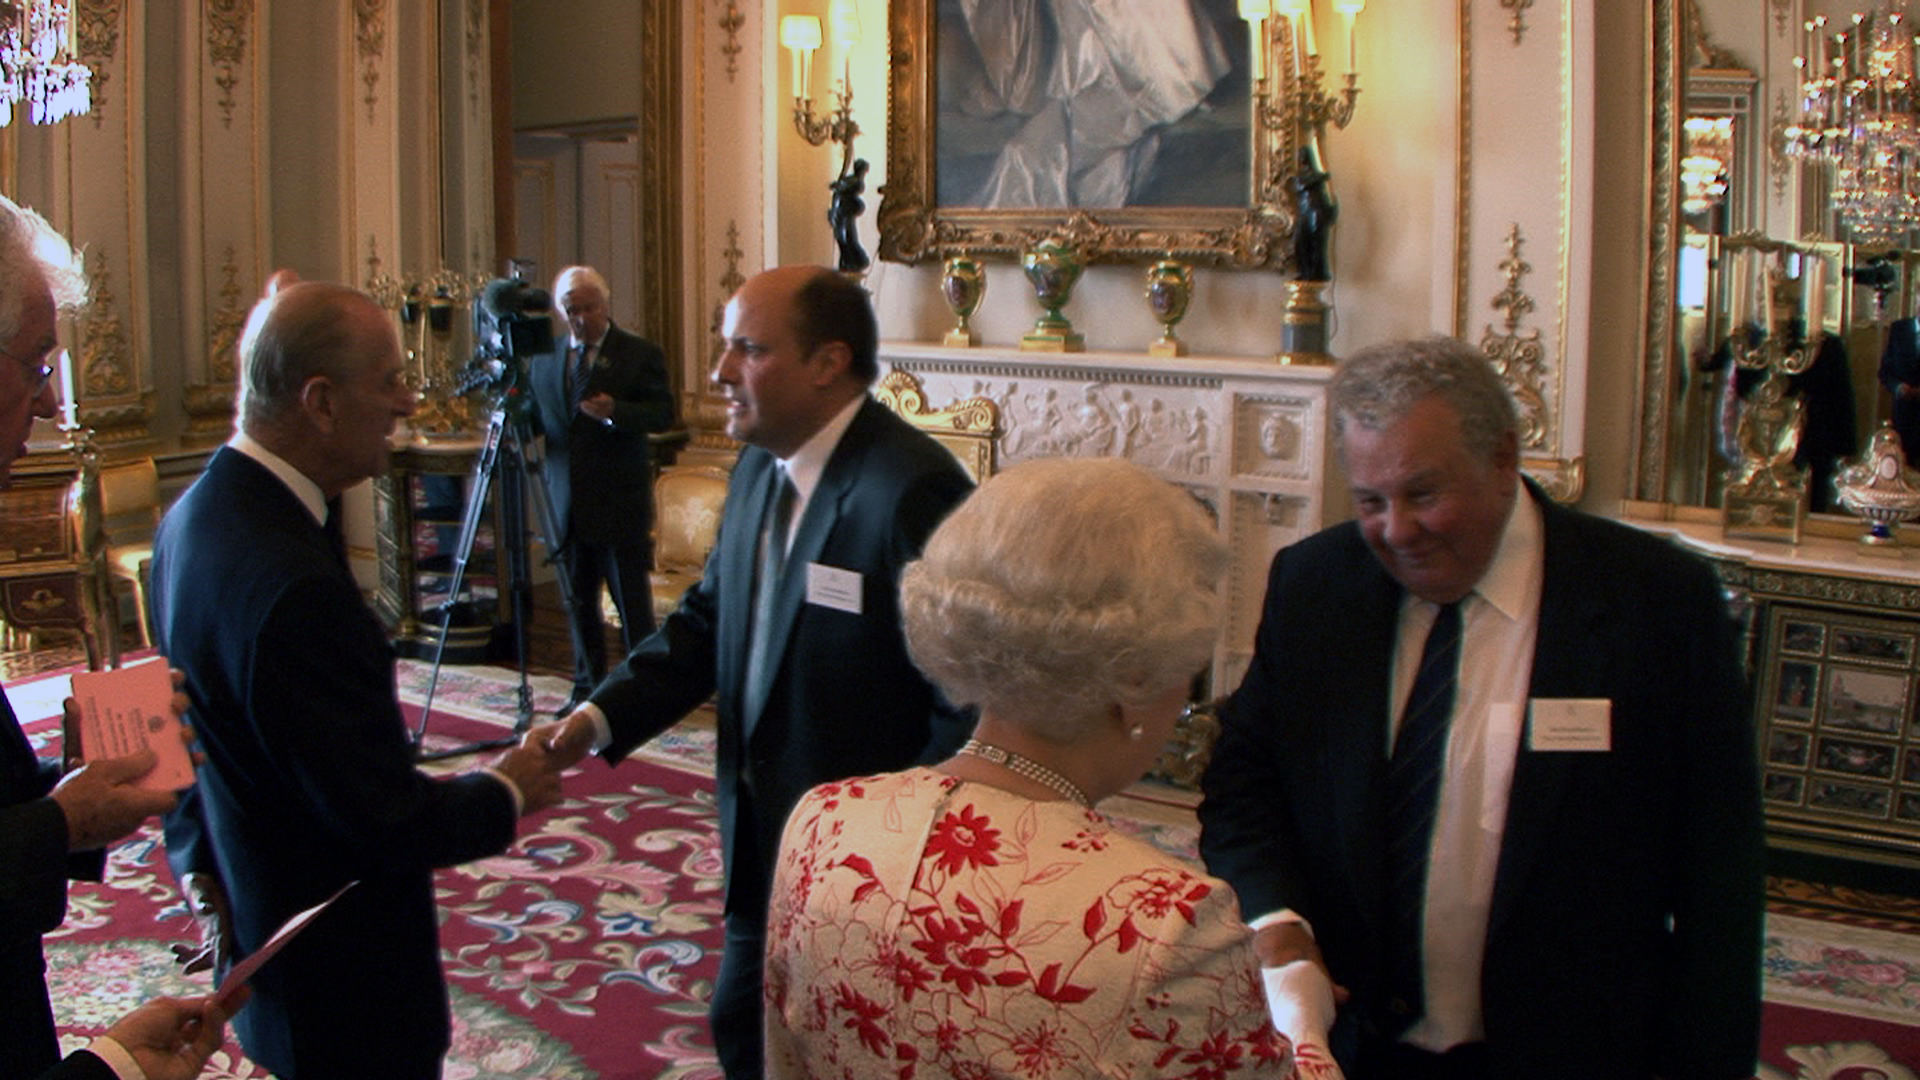 Colin and Adam meet The Queen and The Duke of Edinburgh